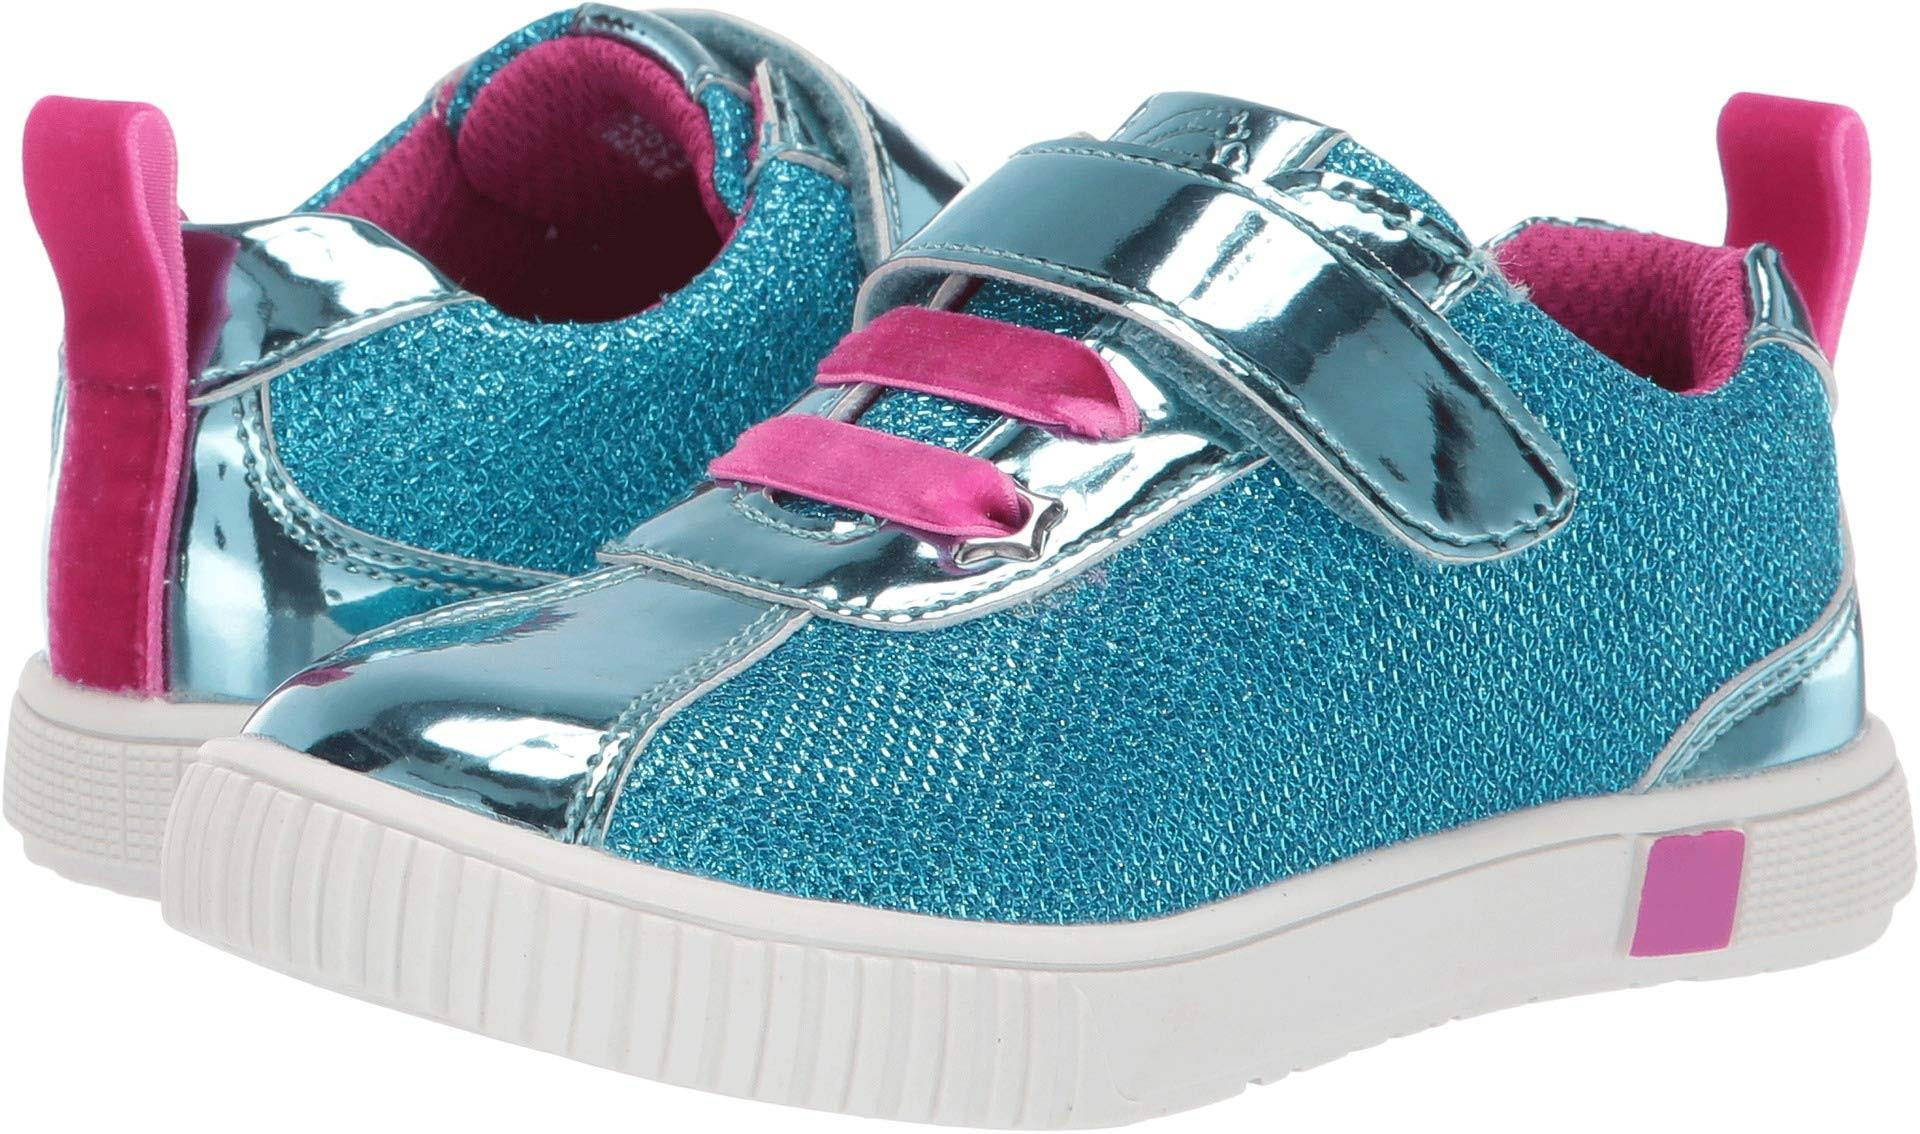 Livie & Luca Girl's Sneaker Aqua Metallic Spin Sneaker Toddler 9